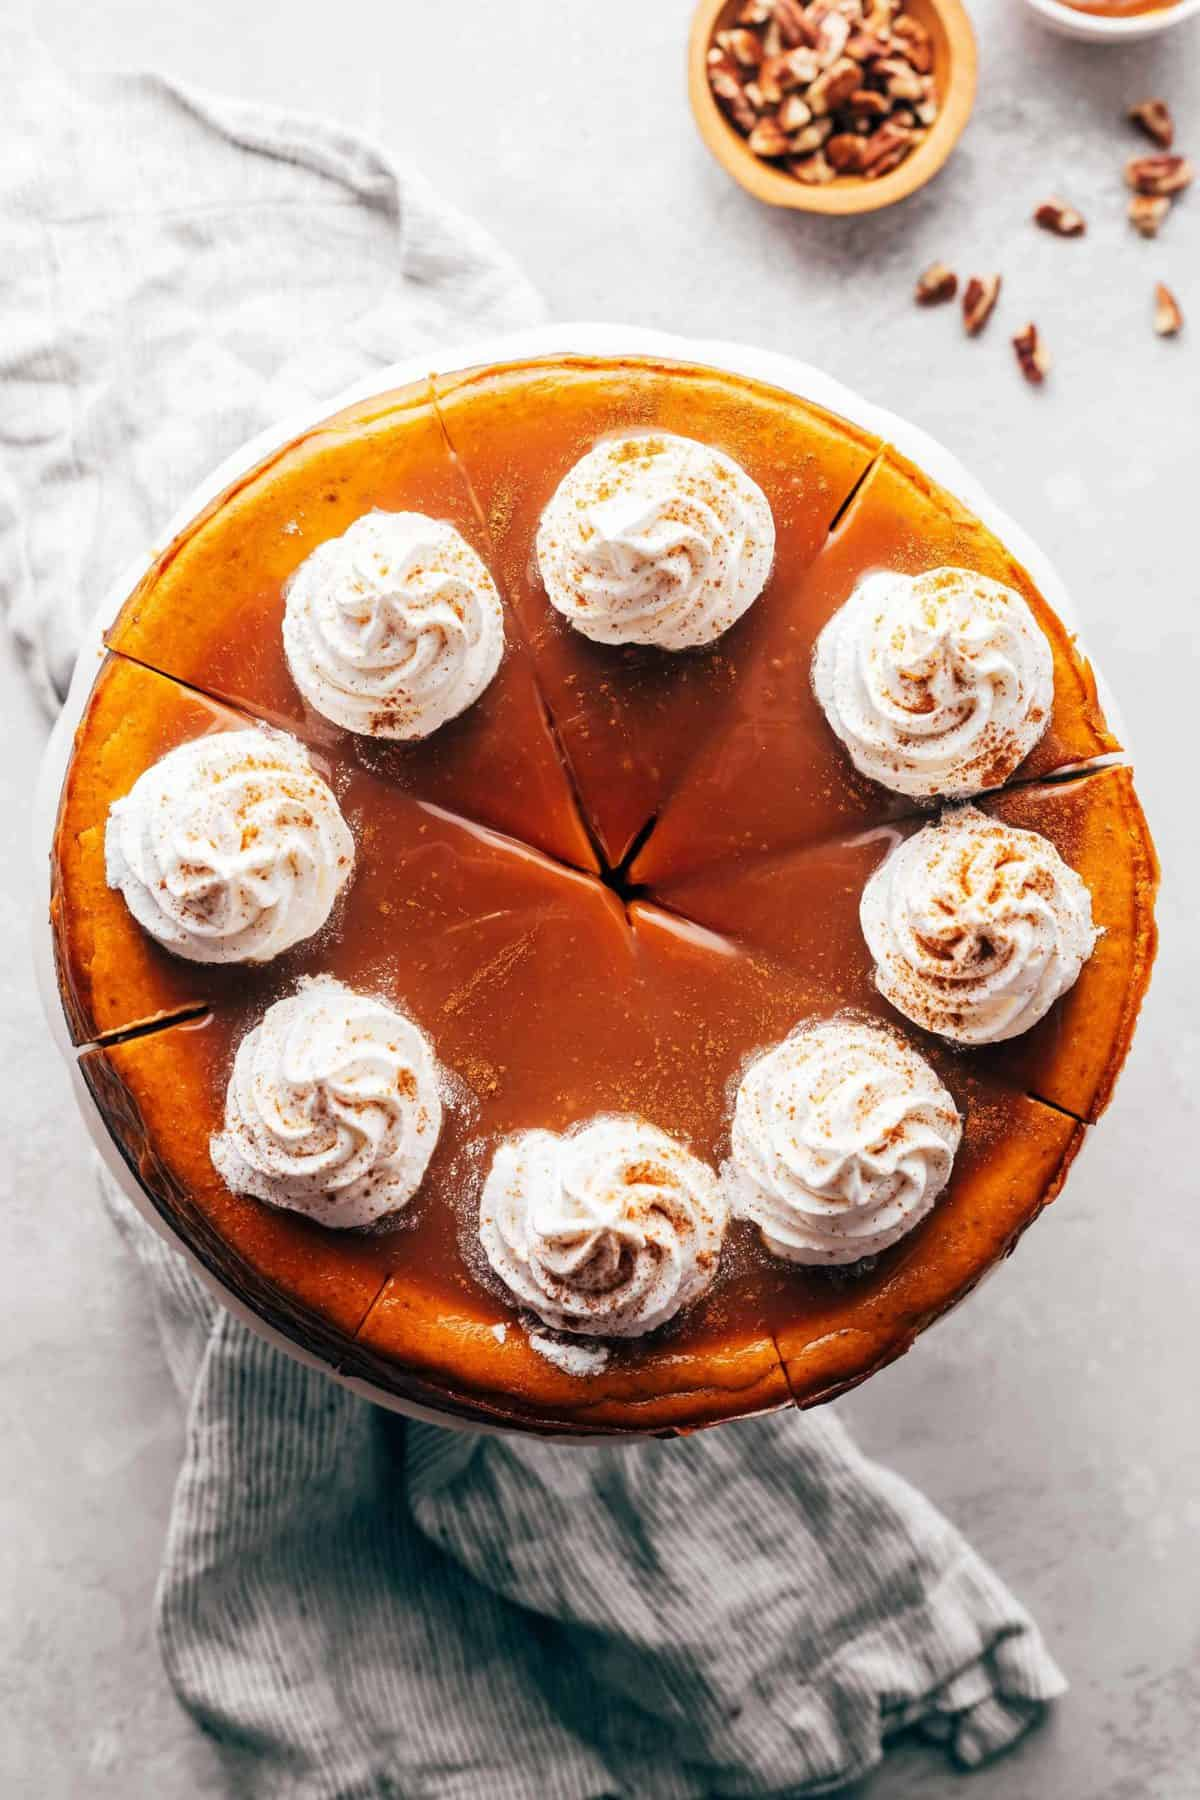 pumpkin cheesecake with caramel sauce and whipped cream